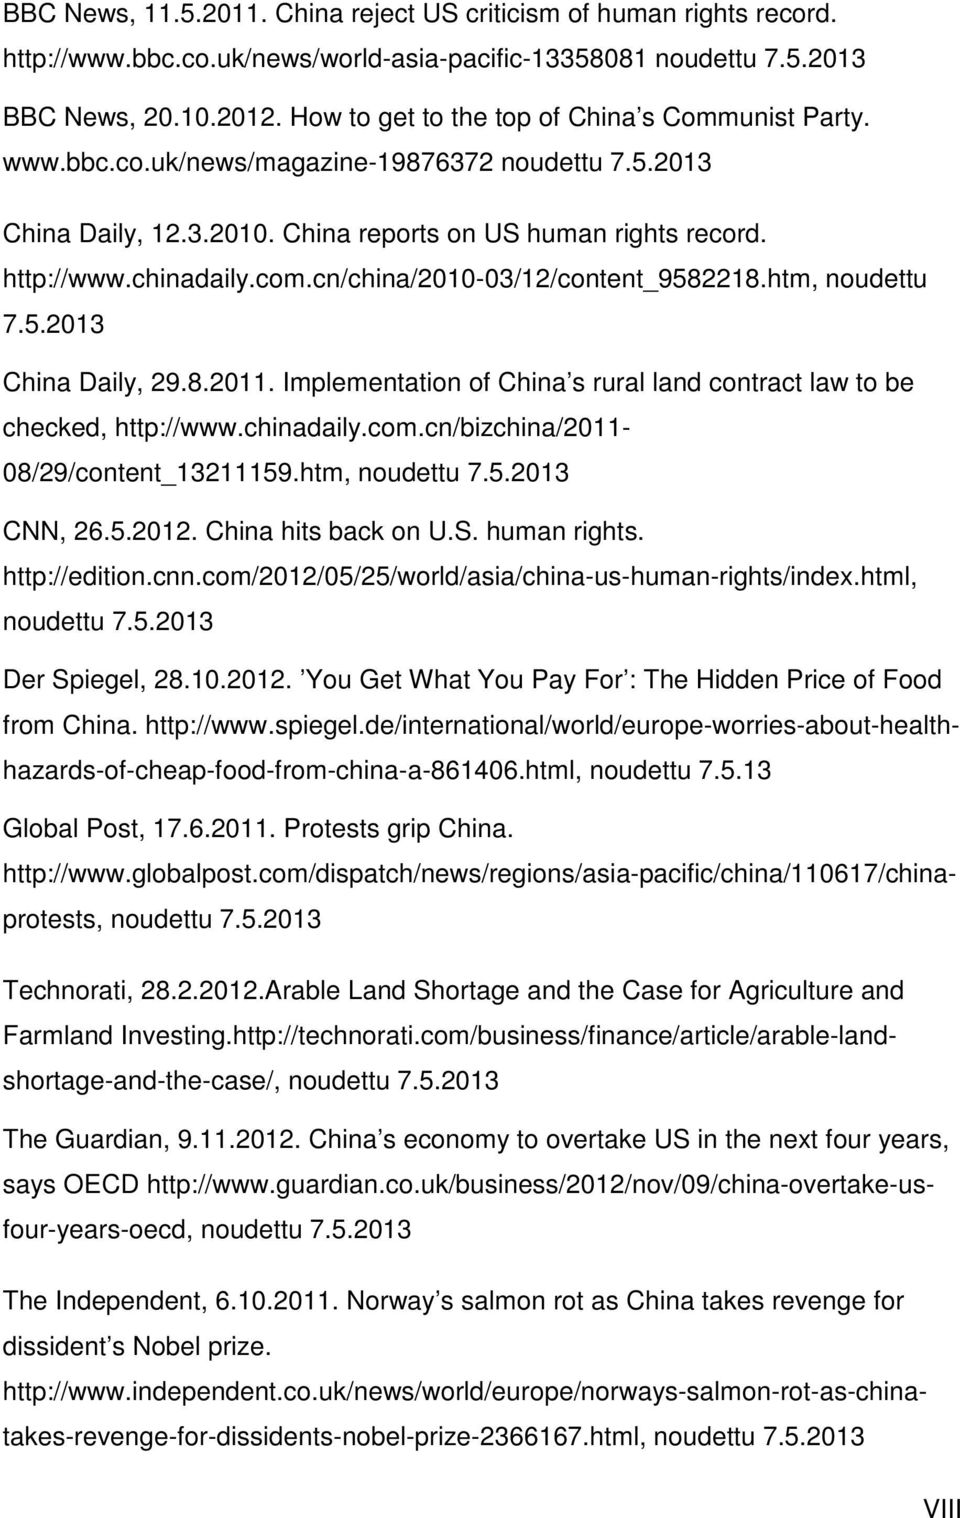 cn/china/2010-03/12/content_9582218.htm, noudettu 7.5.2013 China Daily, 29.8.2011. Implementation of China s rural land contract law to be checked, http://www.chinadaily.com.